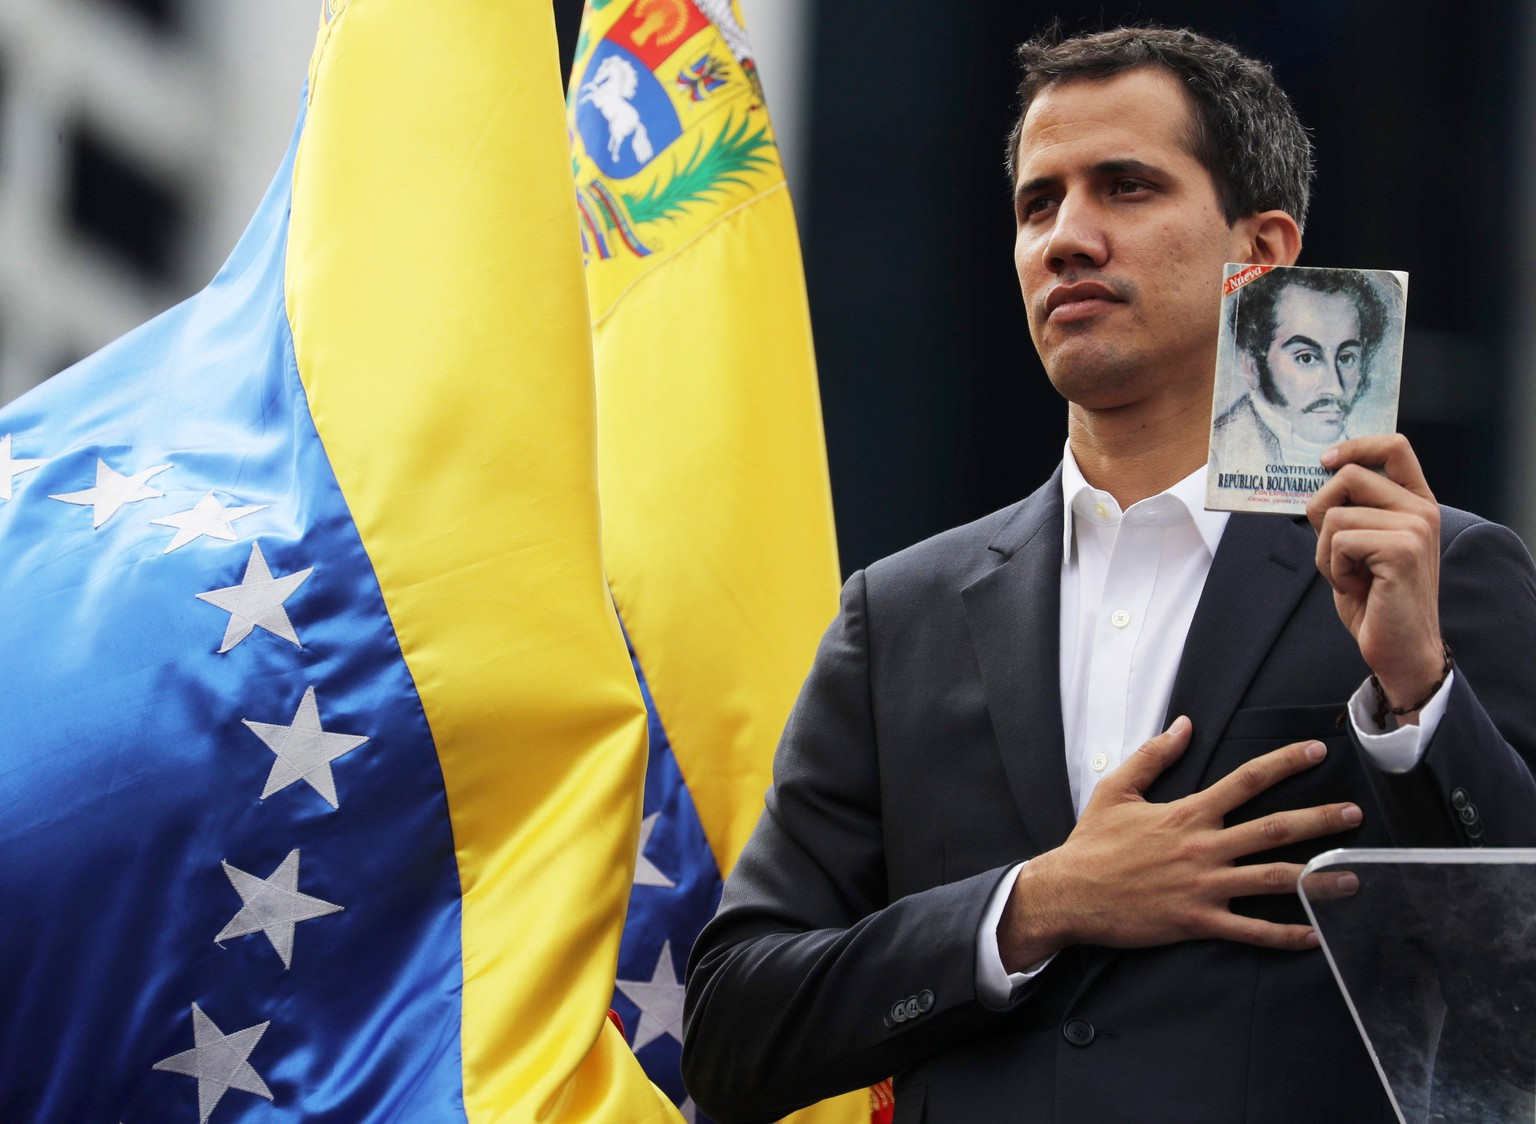 epaselect epa07312932 Juan Guaido, President of the Venezuelan Parliament, poses with a copy of Venezuela's consitution as he announces that he assumes executive powers, in Caracas, Venezuela, 23 January 2019. Guaido declared himself interim president of Venezuela - a move that was quickly recognised by US President Trump -  in fight against President Maduro whose presidency Guaido considers 'illegitimate'.  EPA/Miguel Gutiérrez